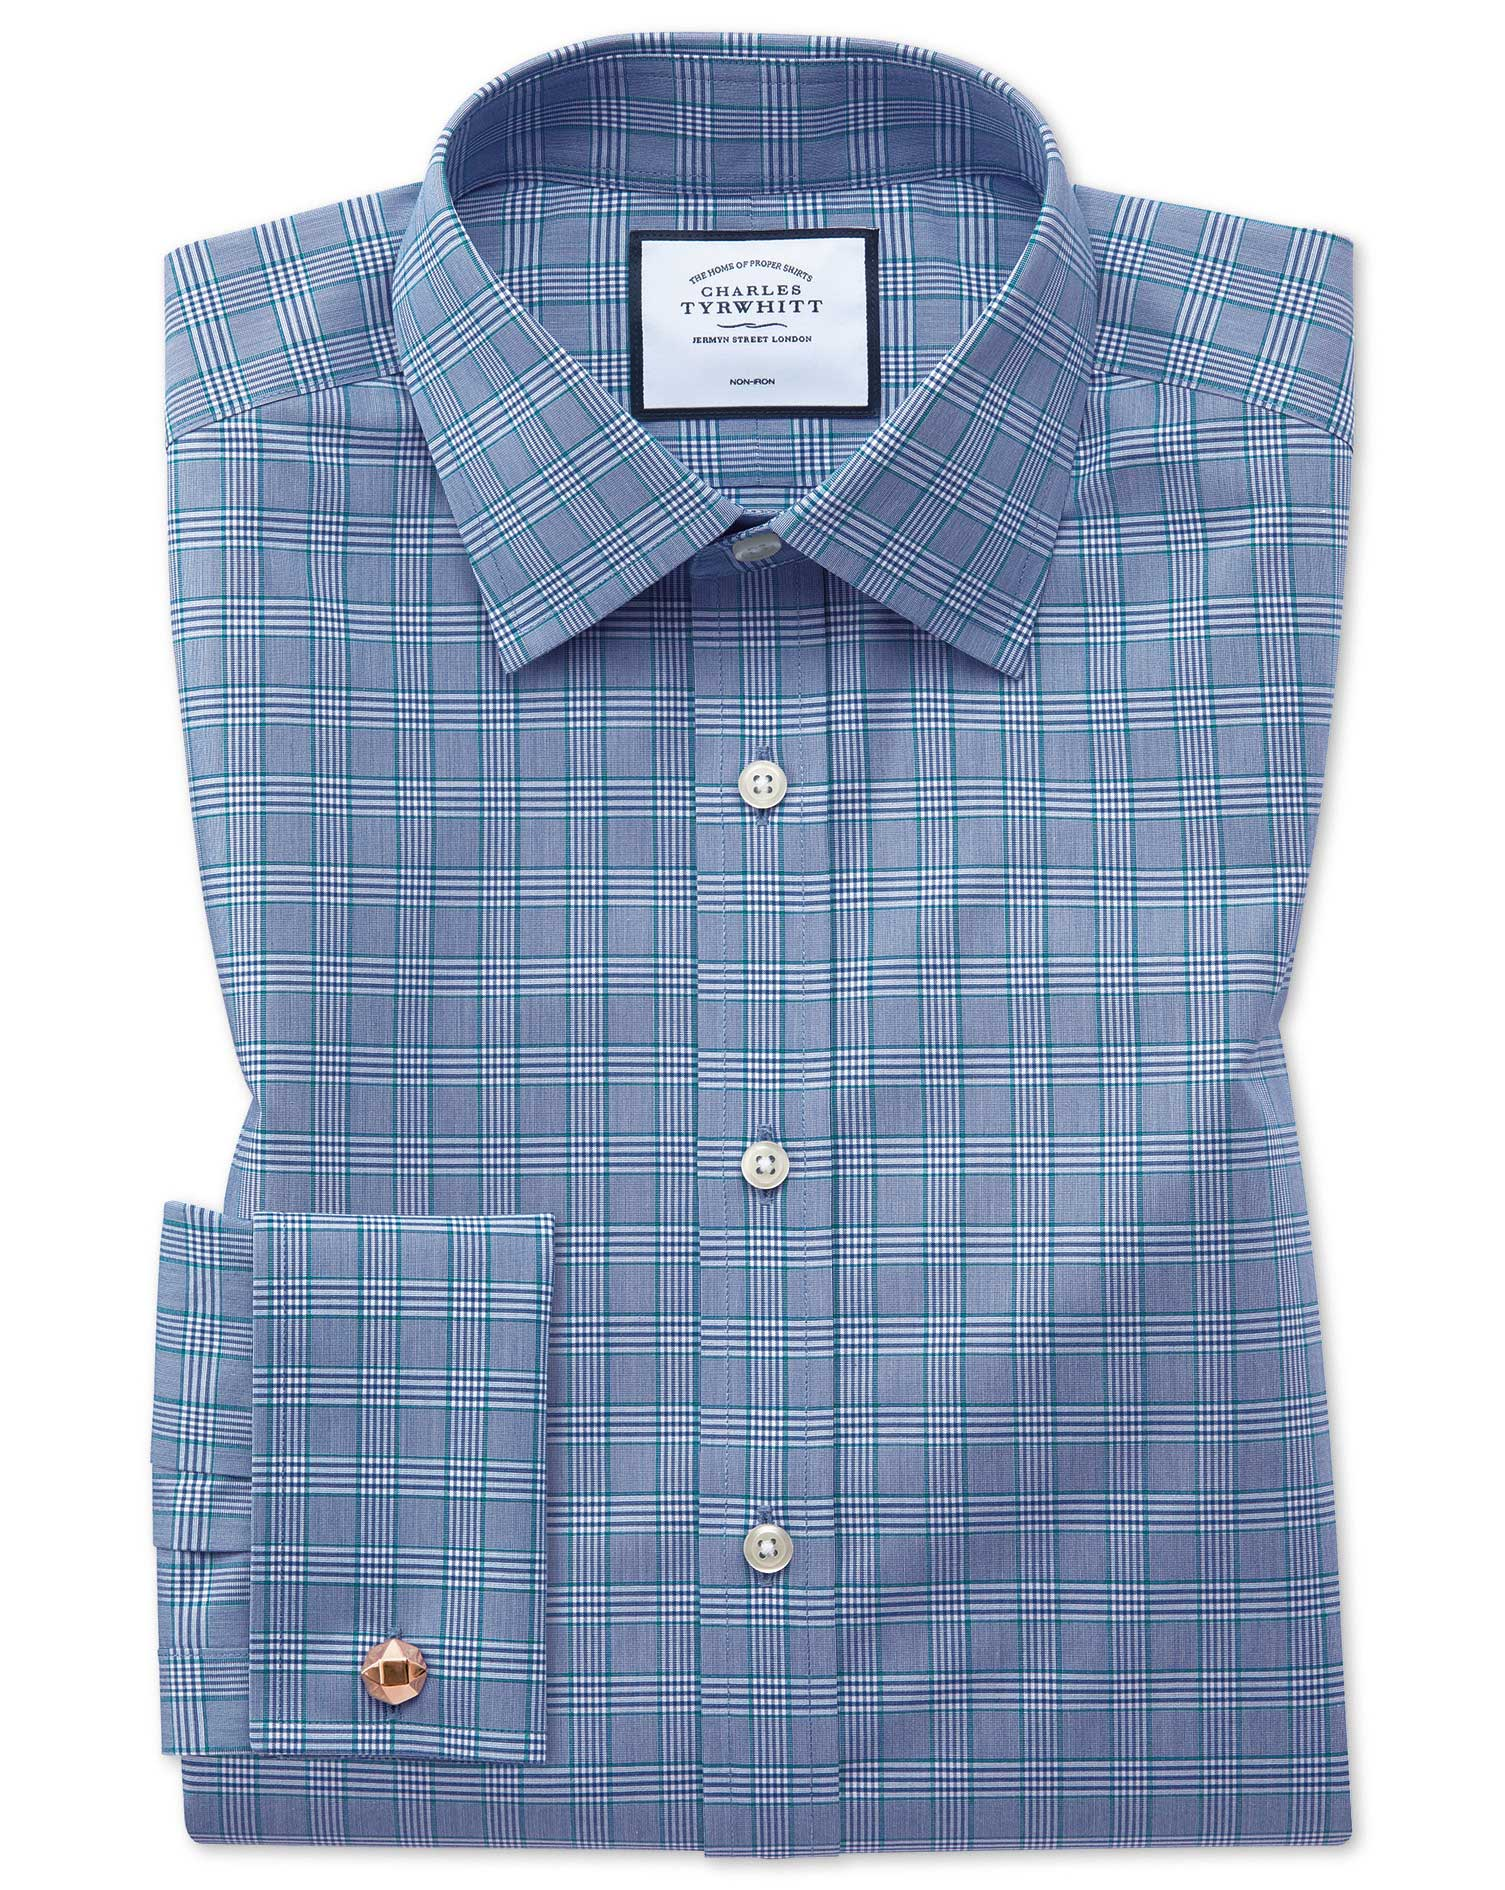 Classic Fit Non-Iron Blue and Green Prince Of Wales Check Cotton Formal Shirt Double Cuff Size 17/37